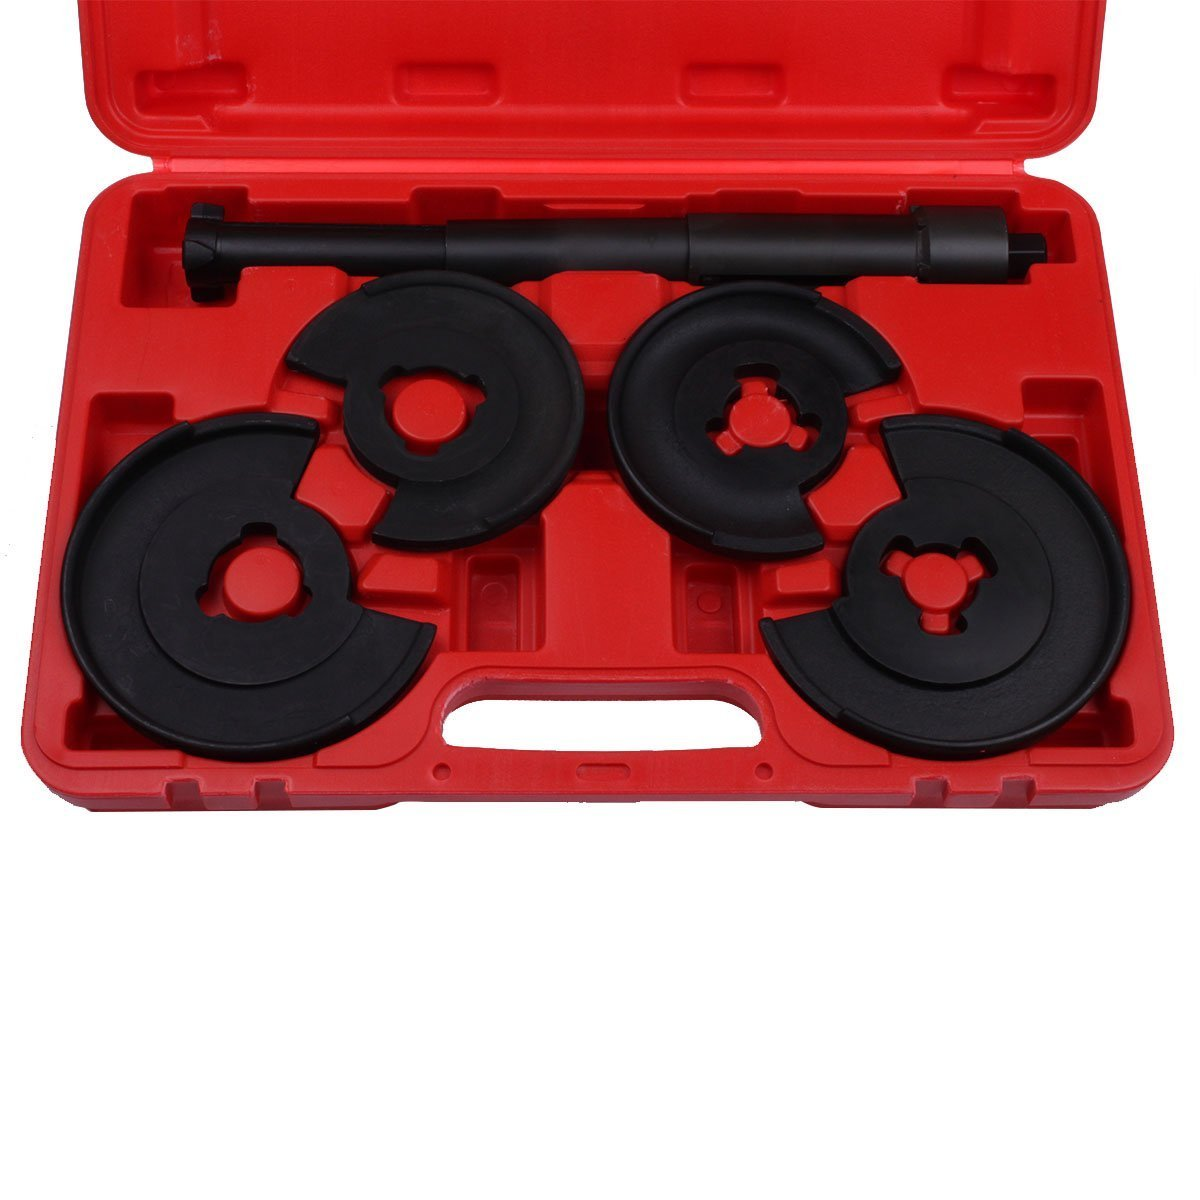 M2 Outlet Mercedes Benz MBZ 5 piece coil spring compressor tool by M2 Outlet (Image #2)